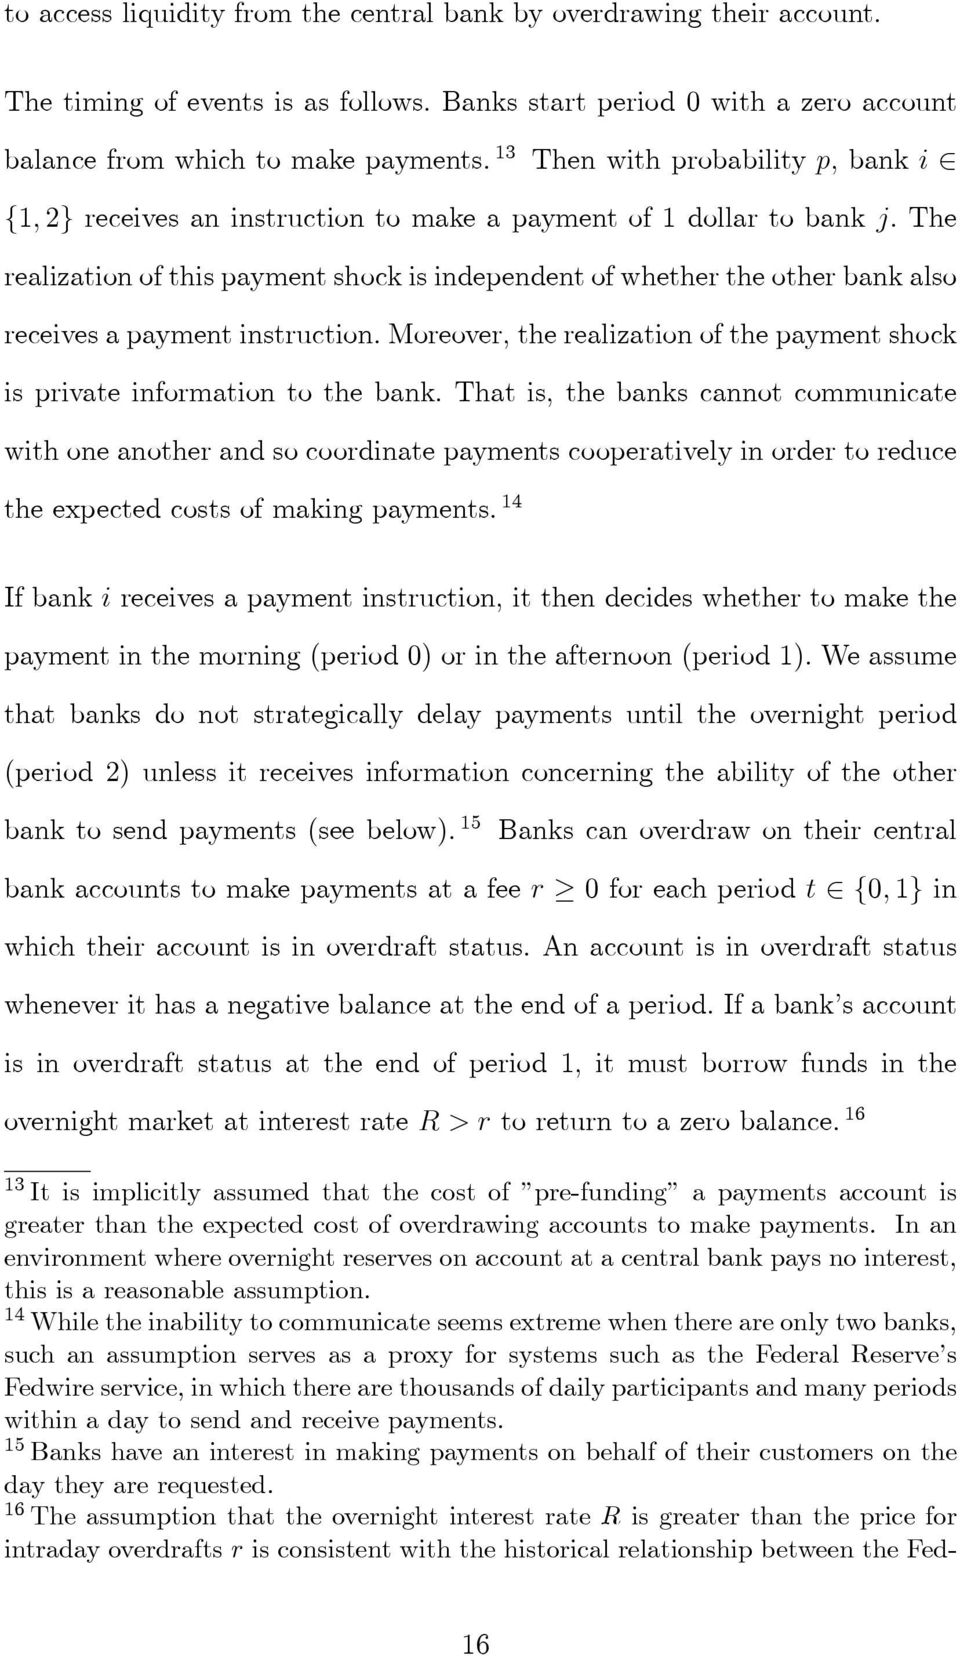 The realization of this payment shock is independent of whether the other bank also receives a payment instruction. Moreover, the realization of the payment shock is private information to the bank.